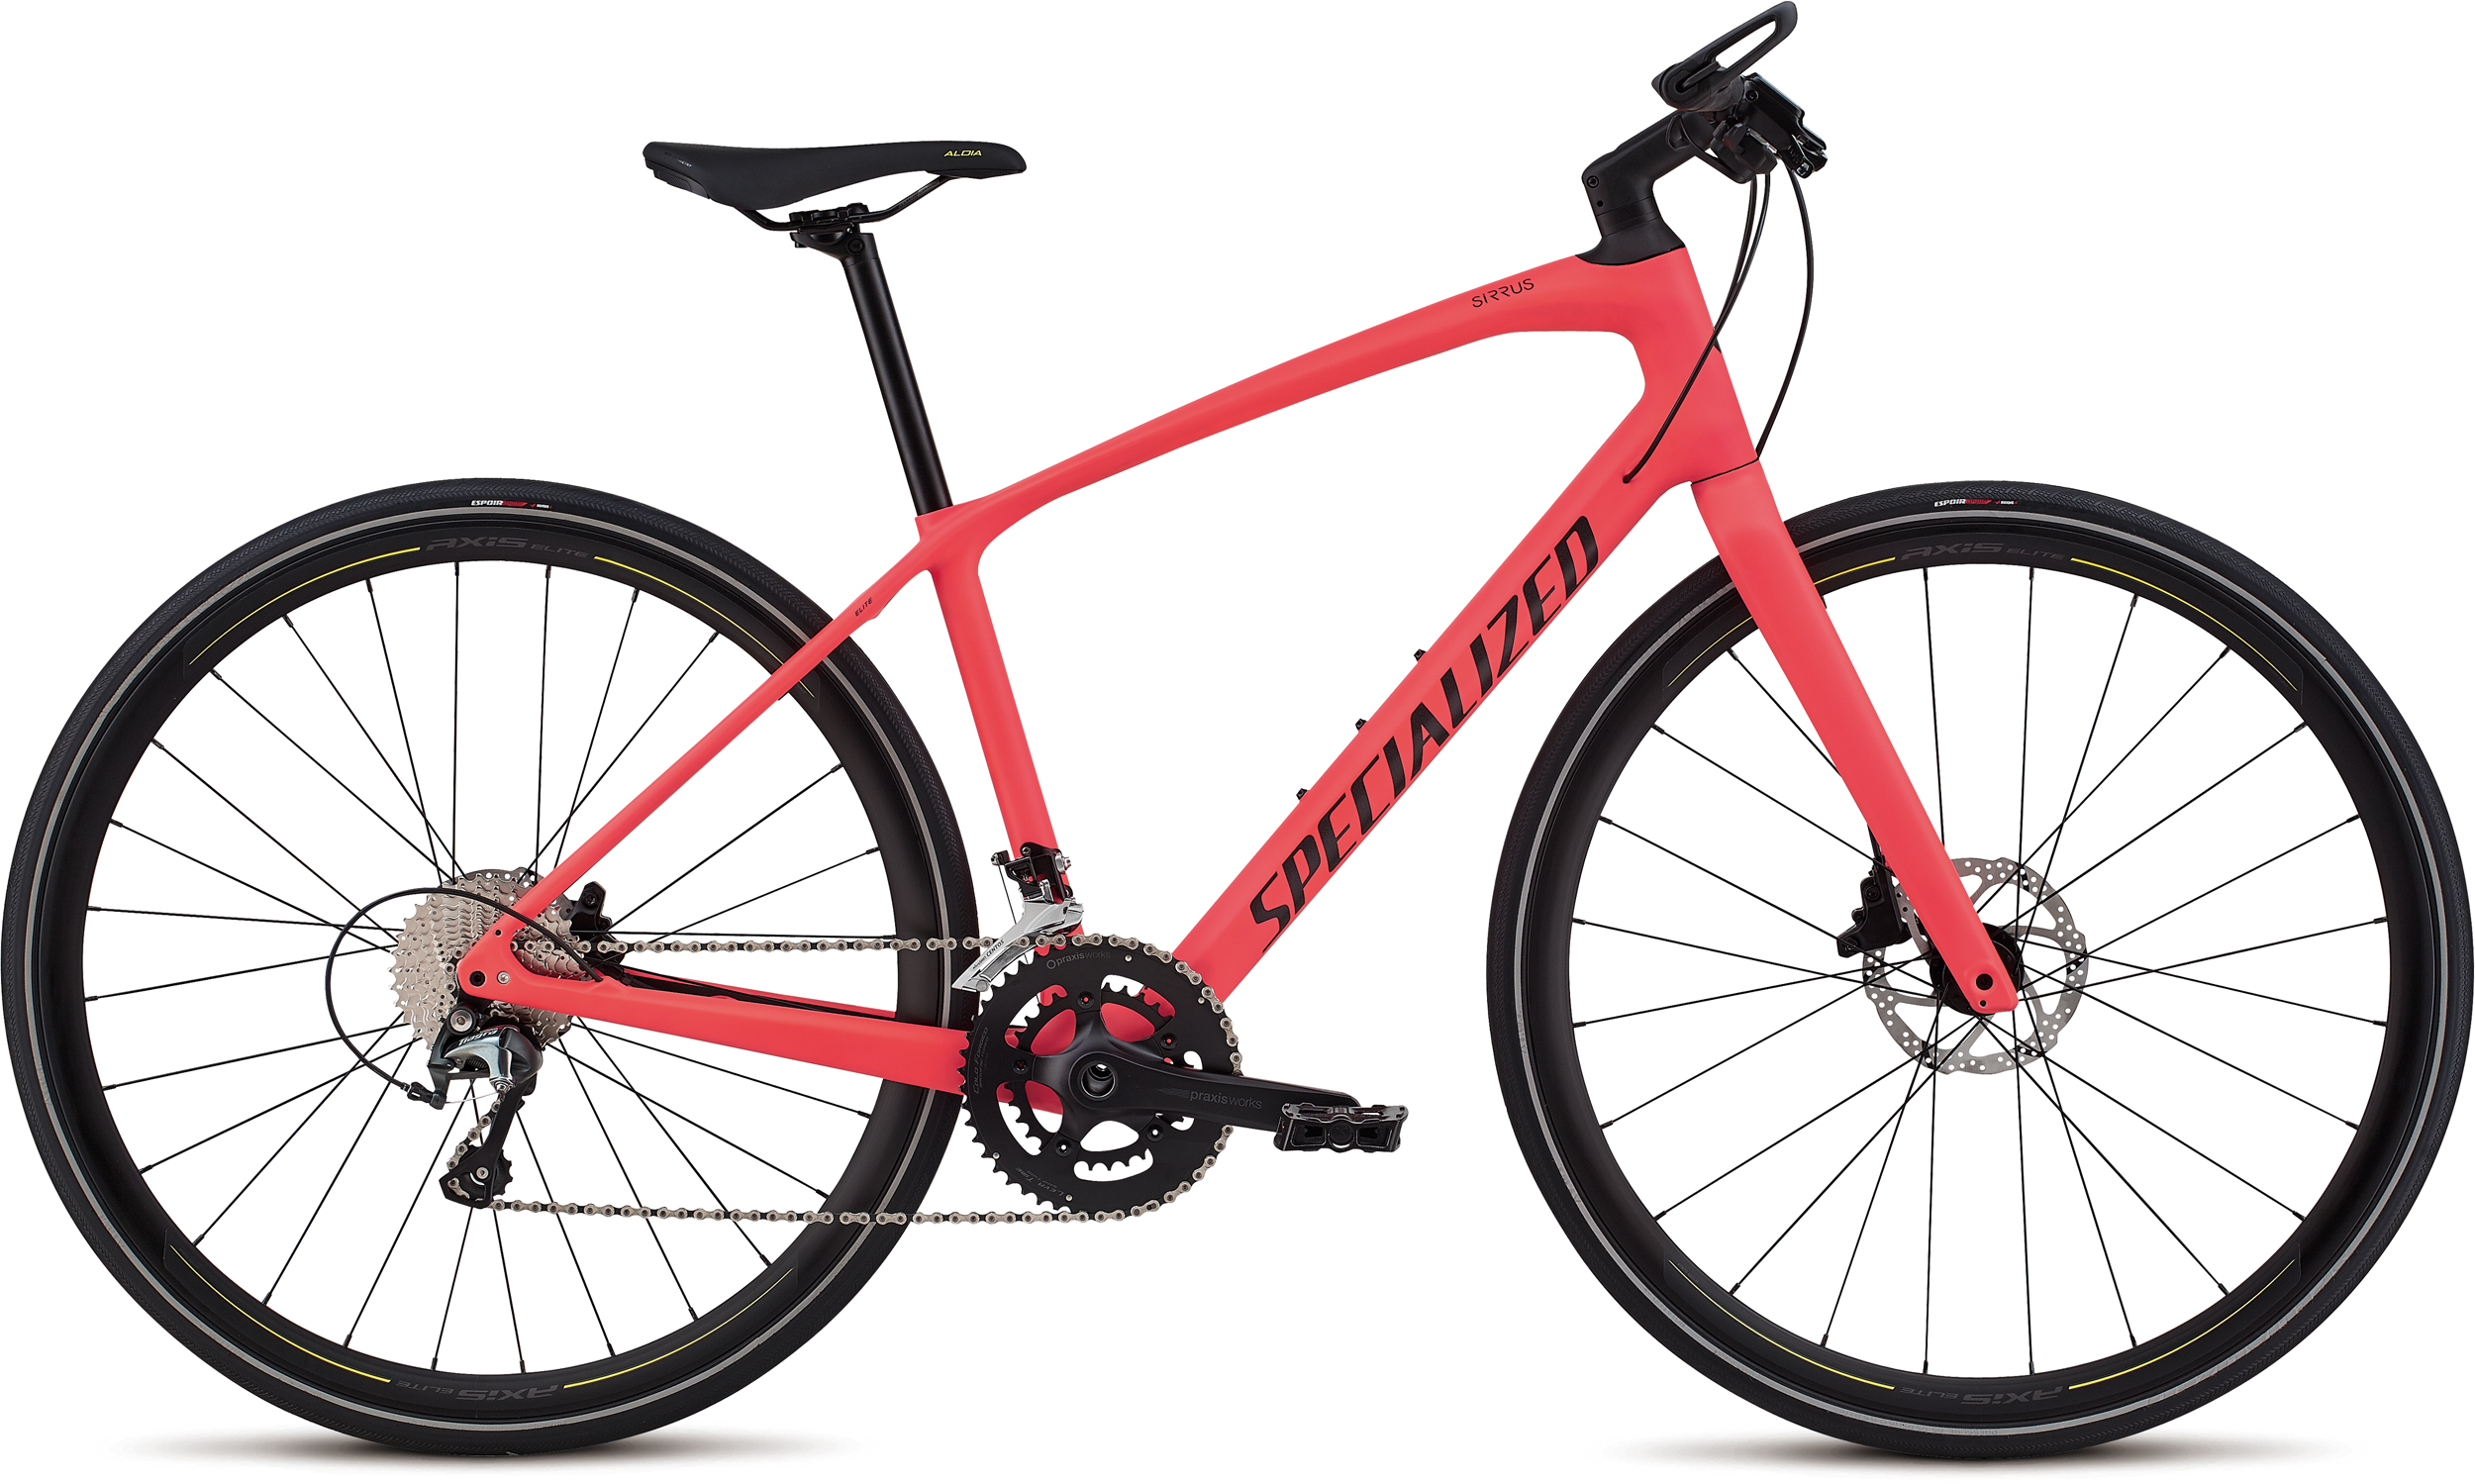 2018 Sirrus carbon starts at $1349